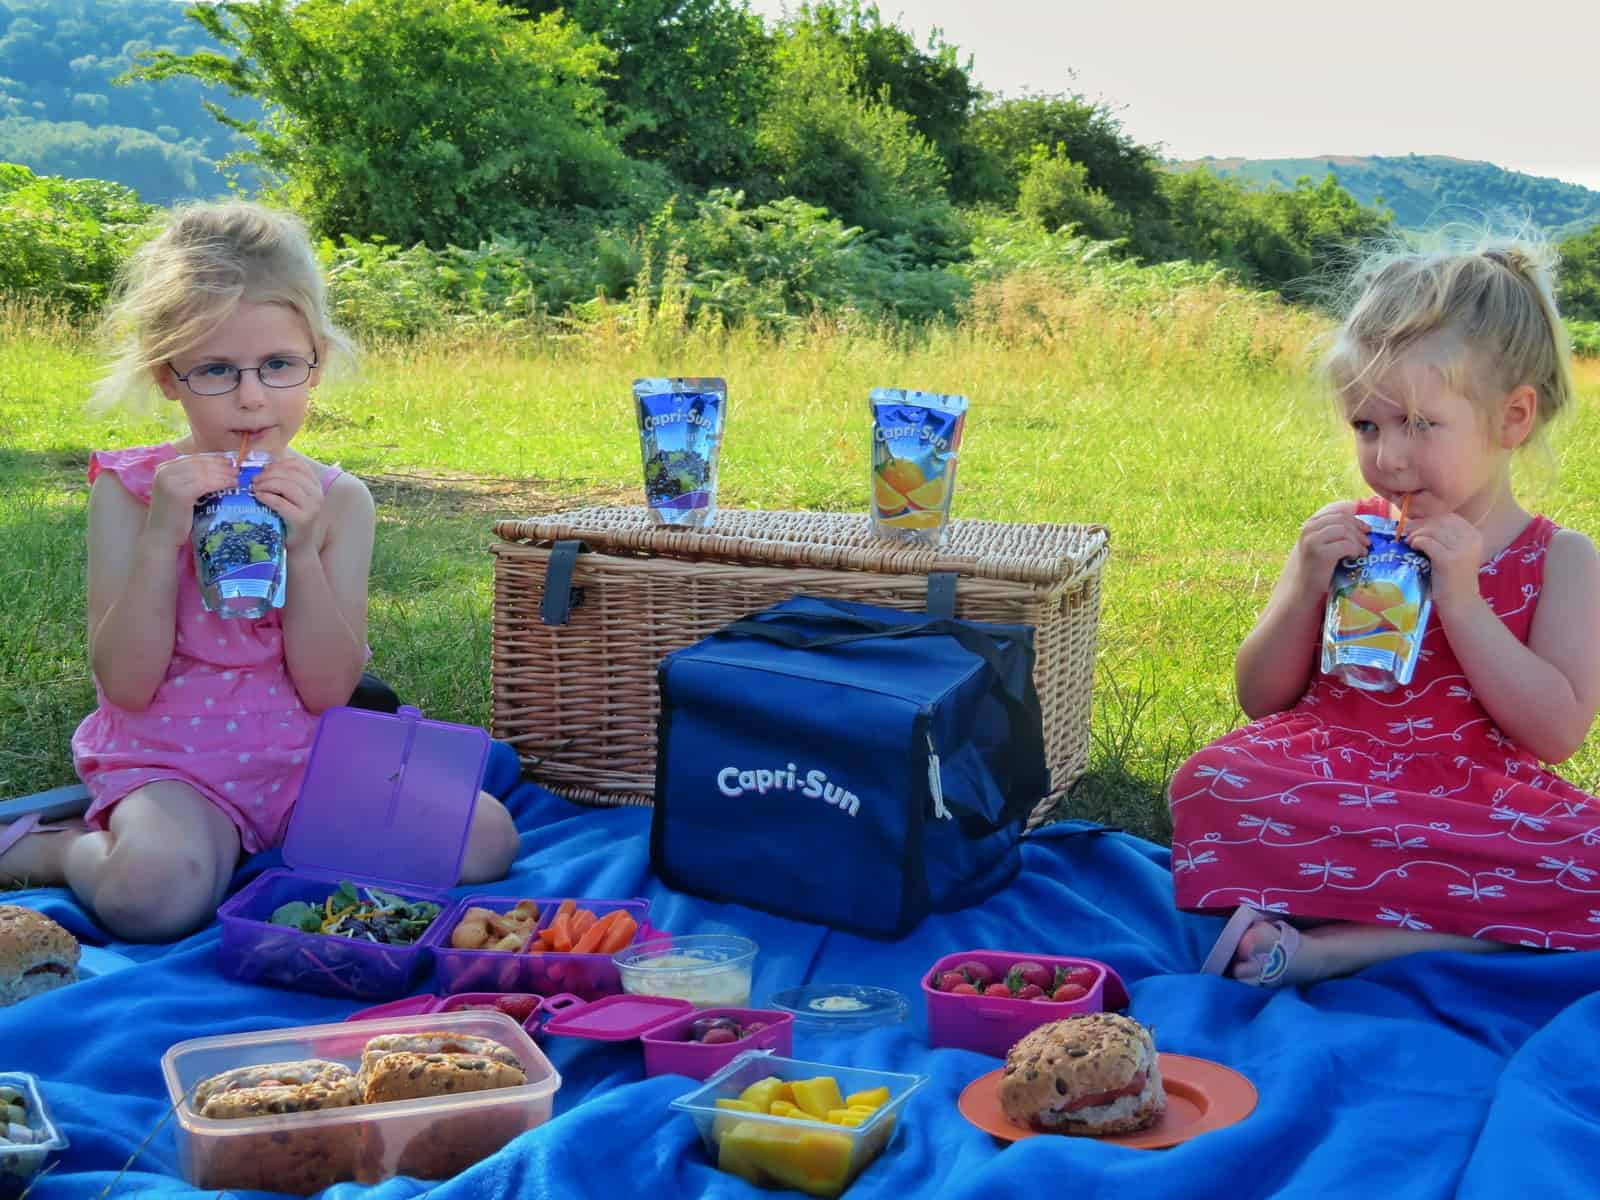 Two girls on a picnic blanket with Capri-Sun drinks and Capri-Sun cool bag with grass and hills behind